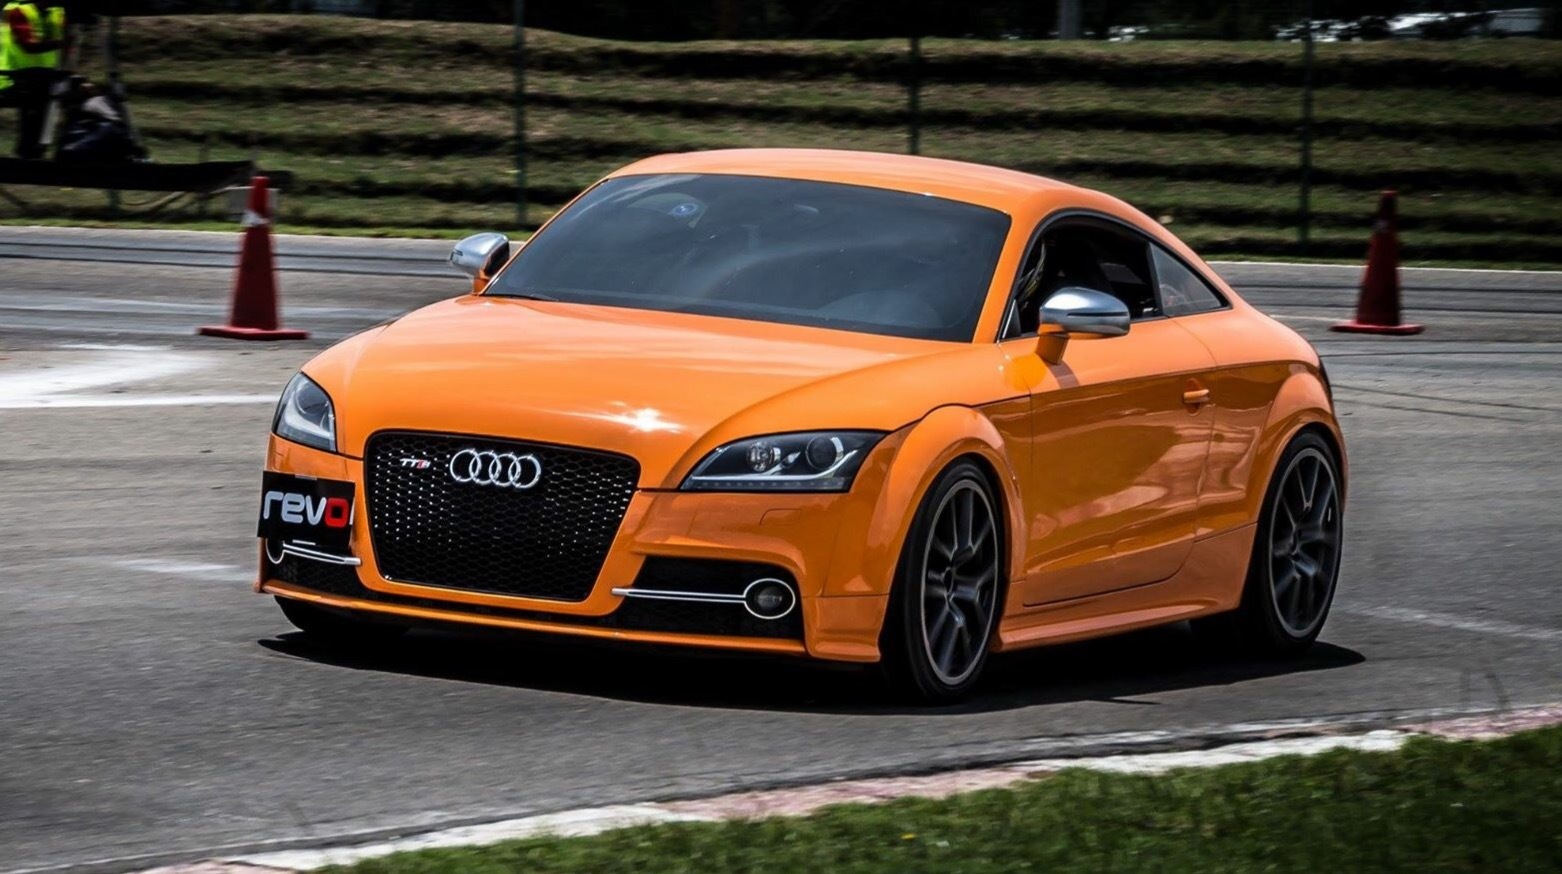 2012 Orange Audi TT S picture, mods, upgrades